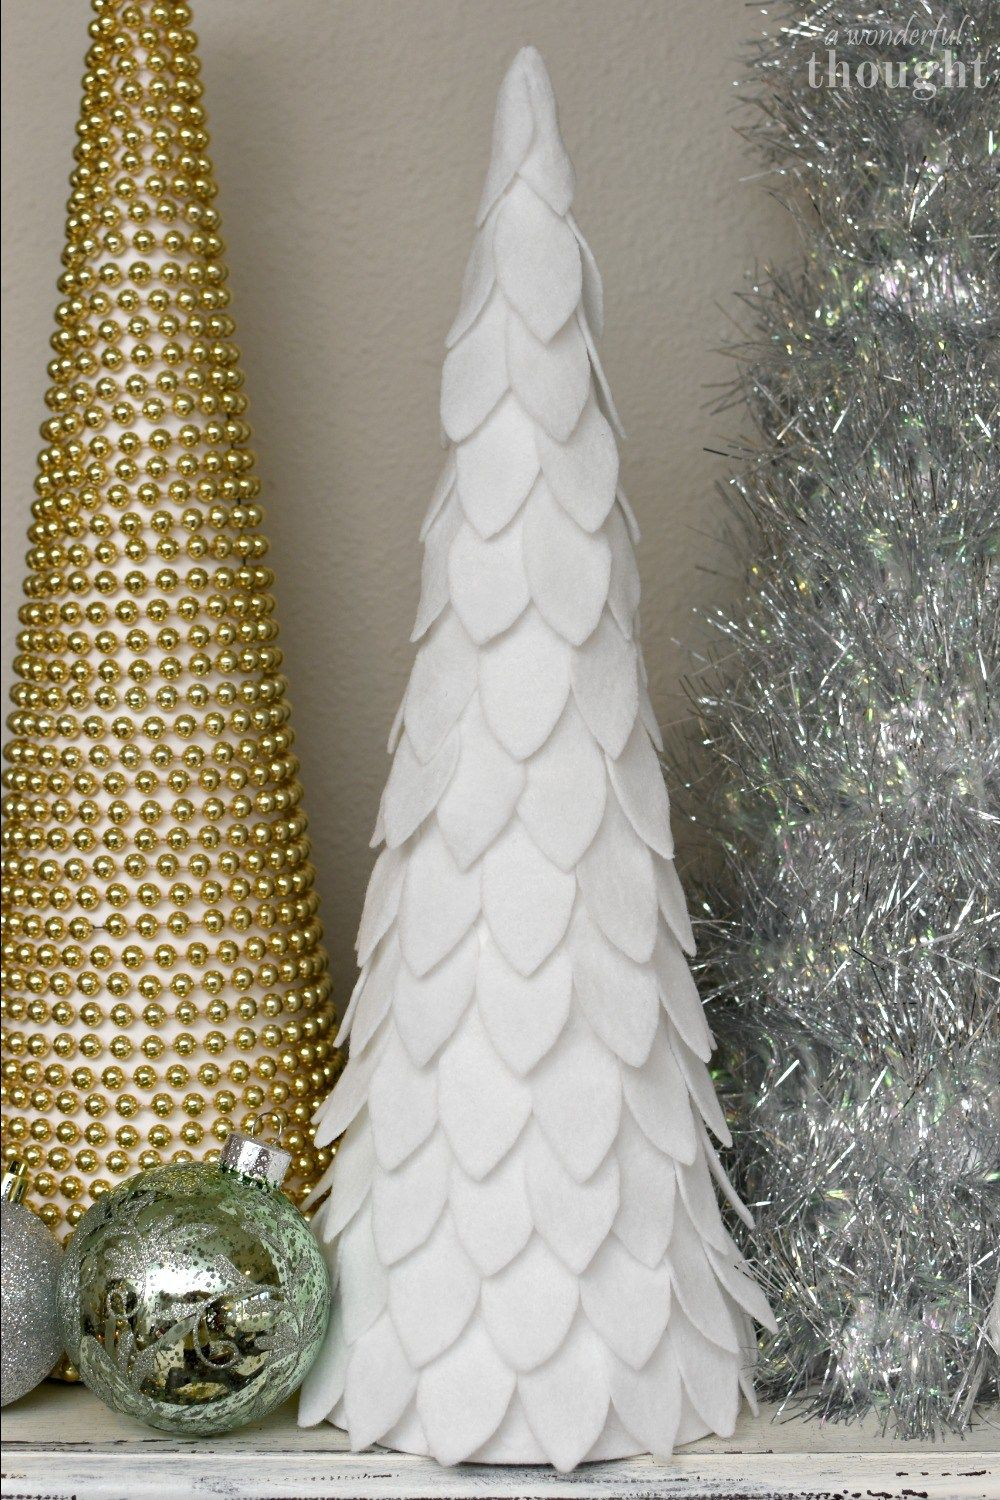 DIY Cone Christmas Trees - A Wonderful Thought